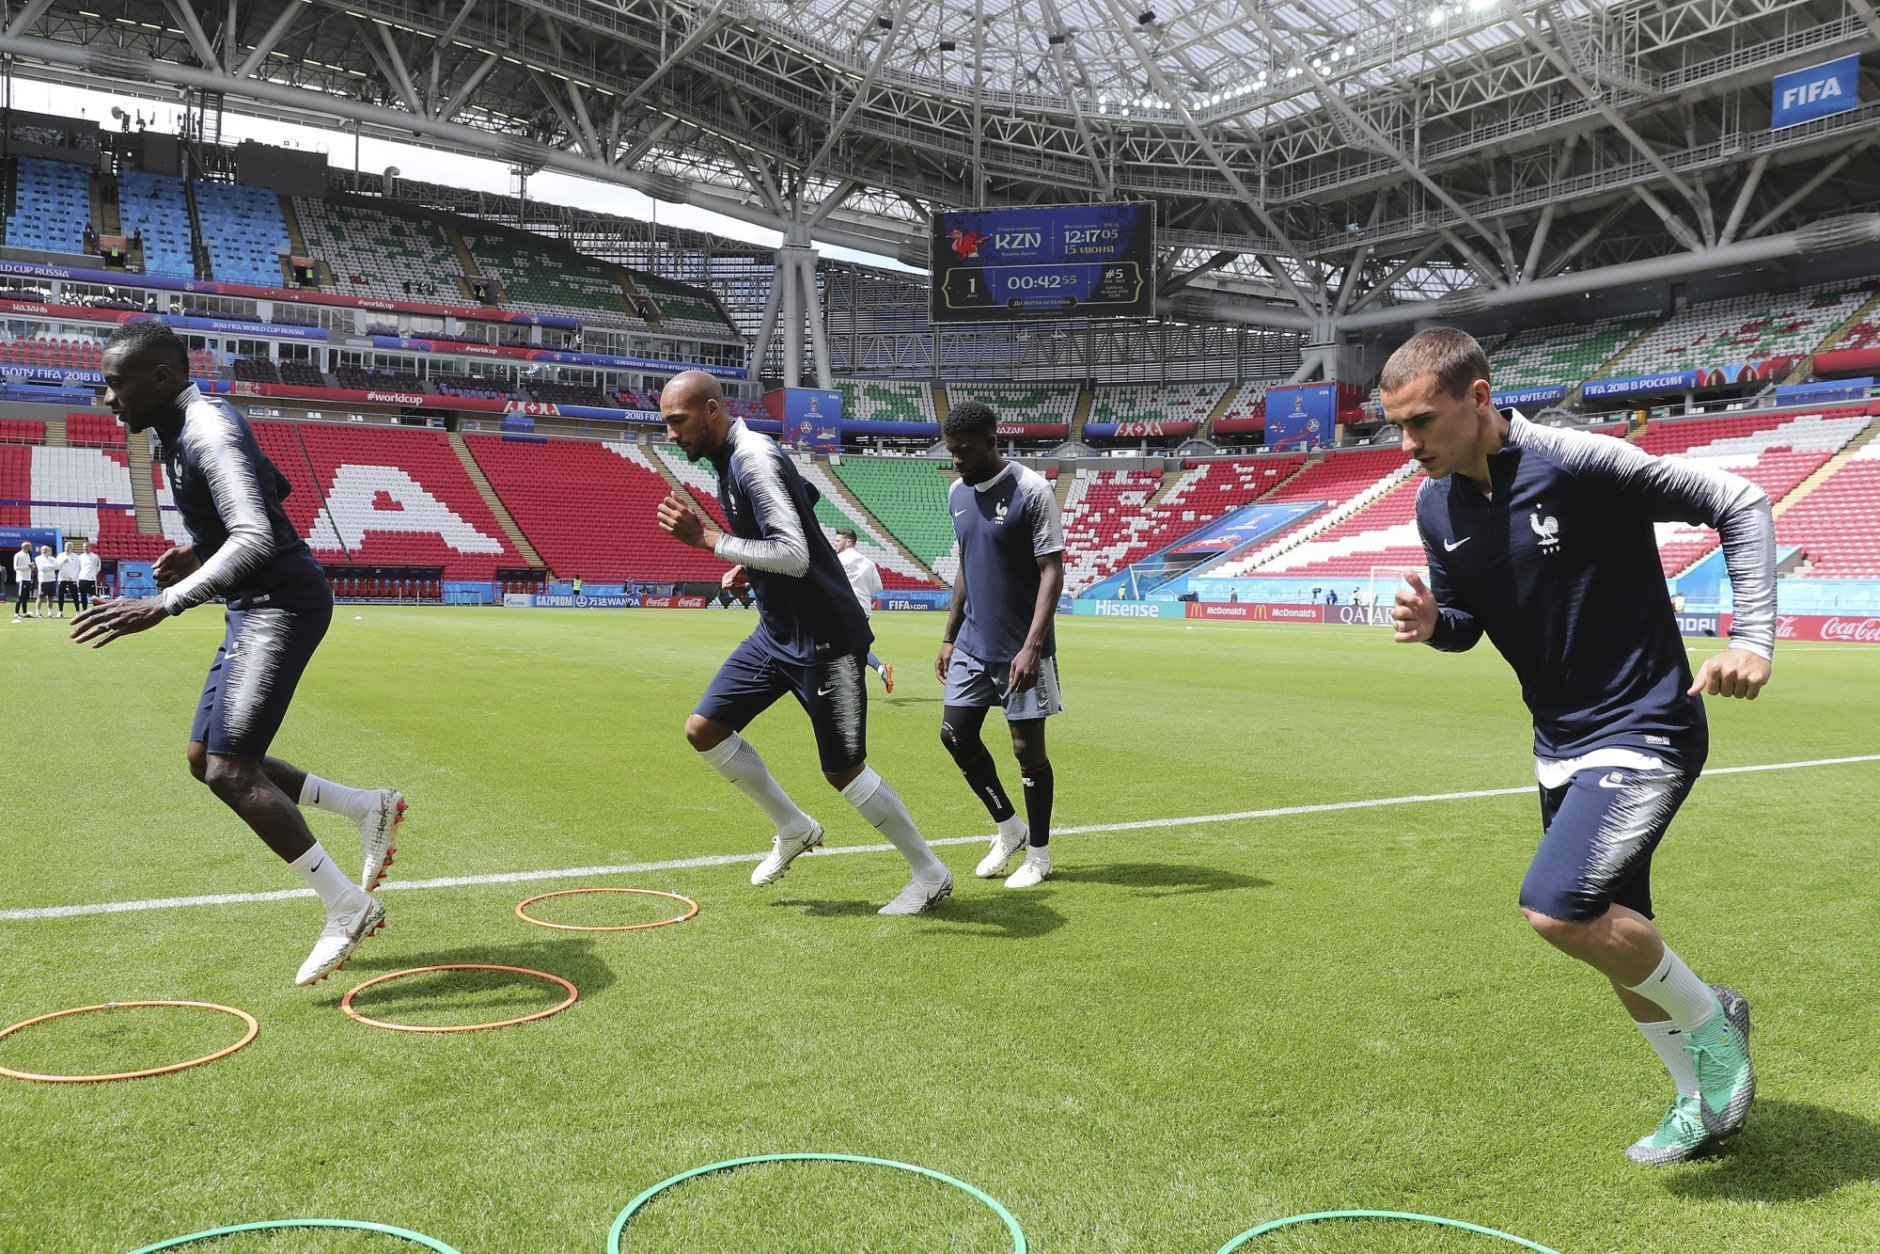 France's Antoine Griezmann, rear right, run on the field during France's official training on the eve of the group C match between France and Australia at the 2018 soccer World Cup in the Kazan Arena in Kazan, Russia, Friday, June 15, 2018. (AP Photo/David Vincent)